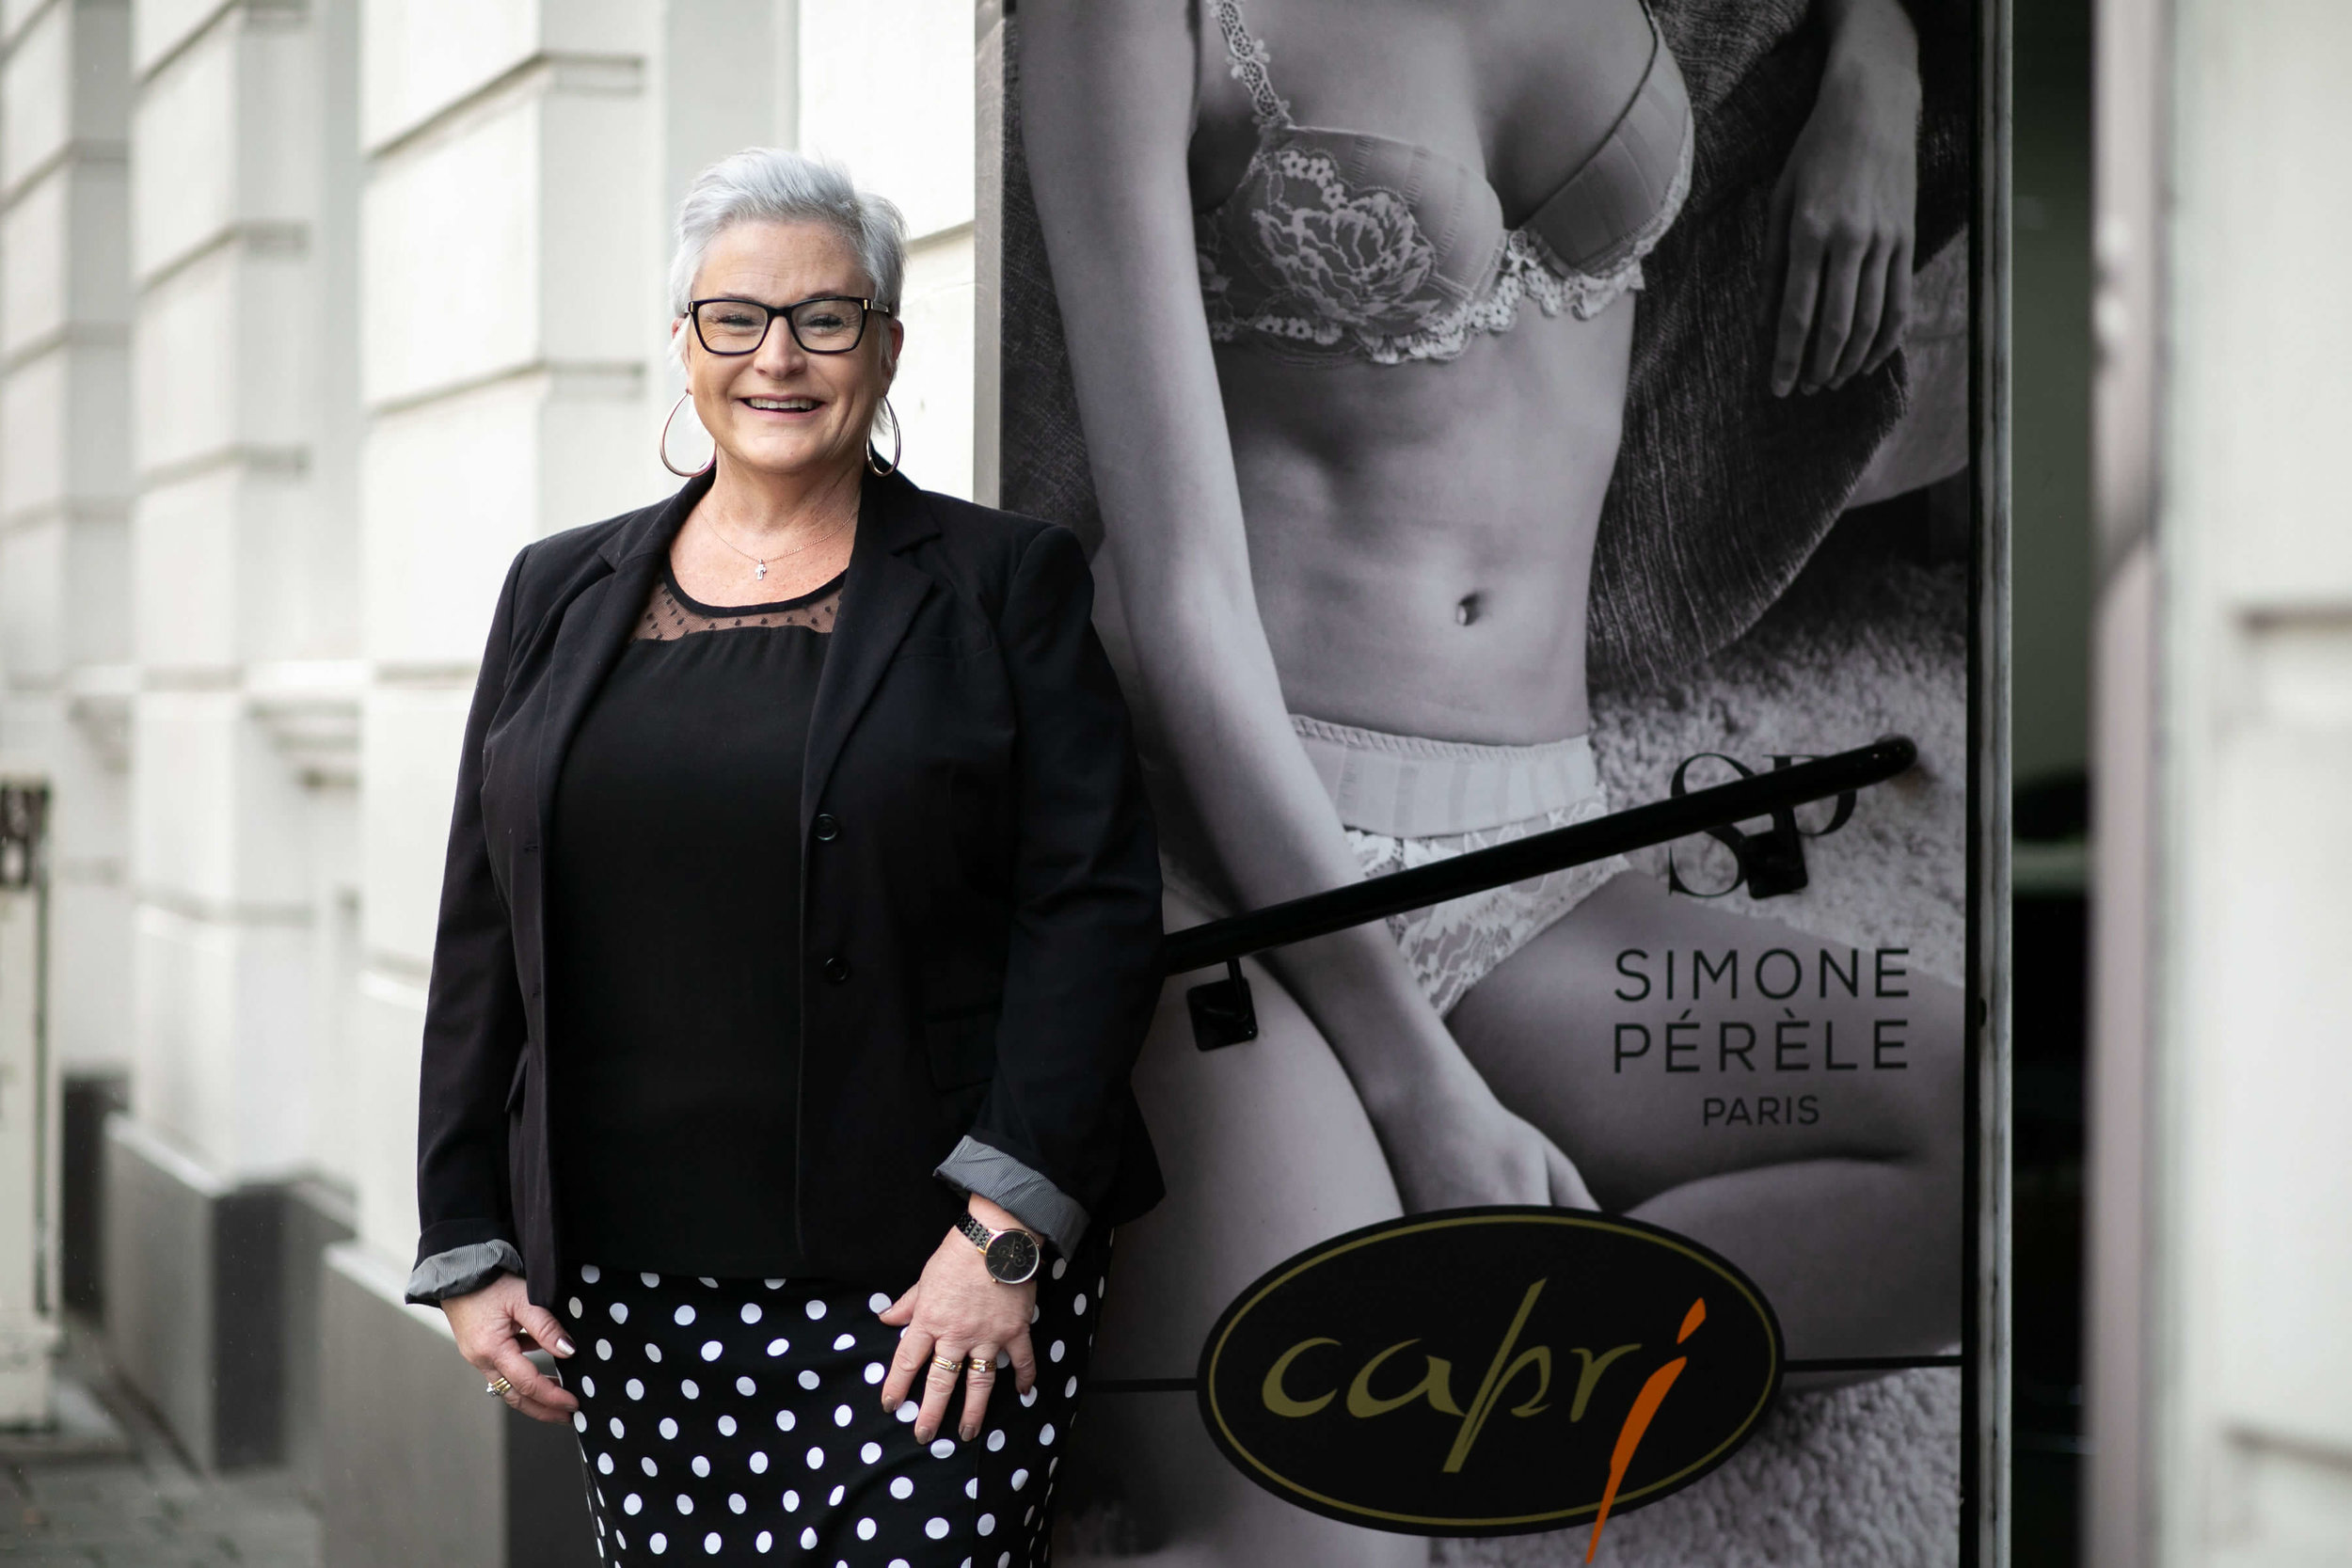 Michelle, owner of Capri is an expert in intimate wear. Image: Melanie de Ruyter for Winterlicious 2019.